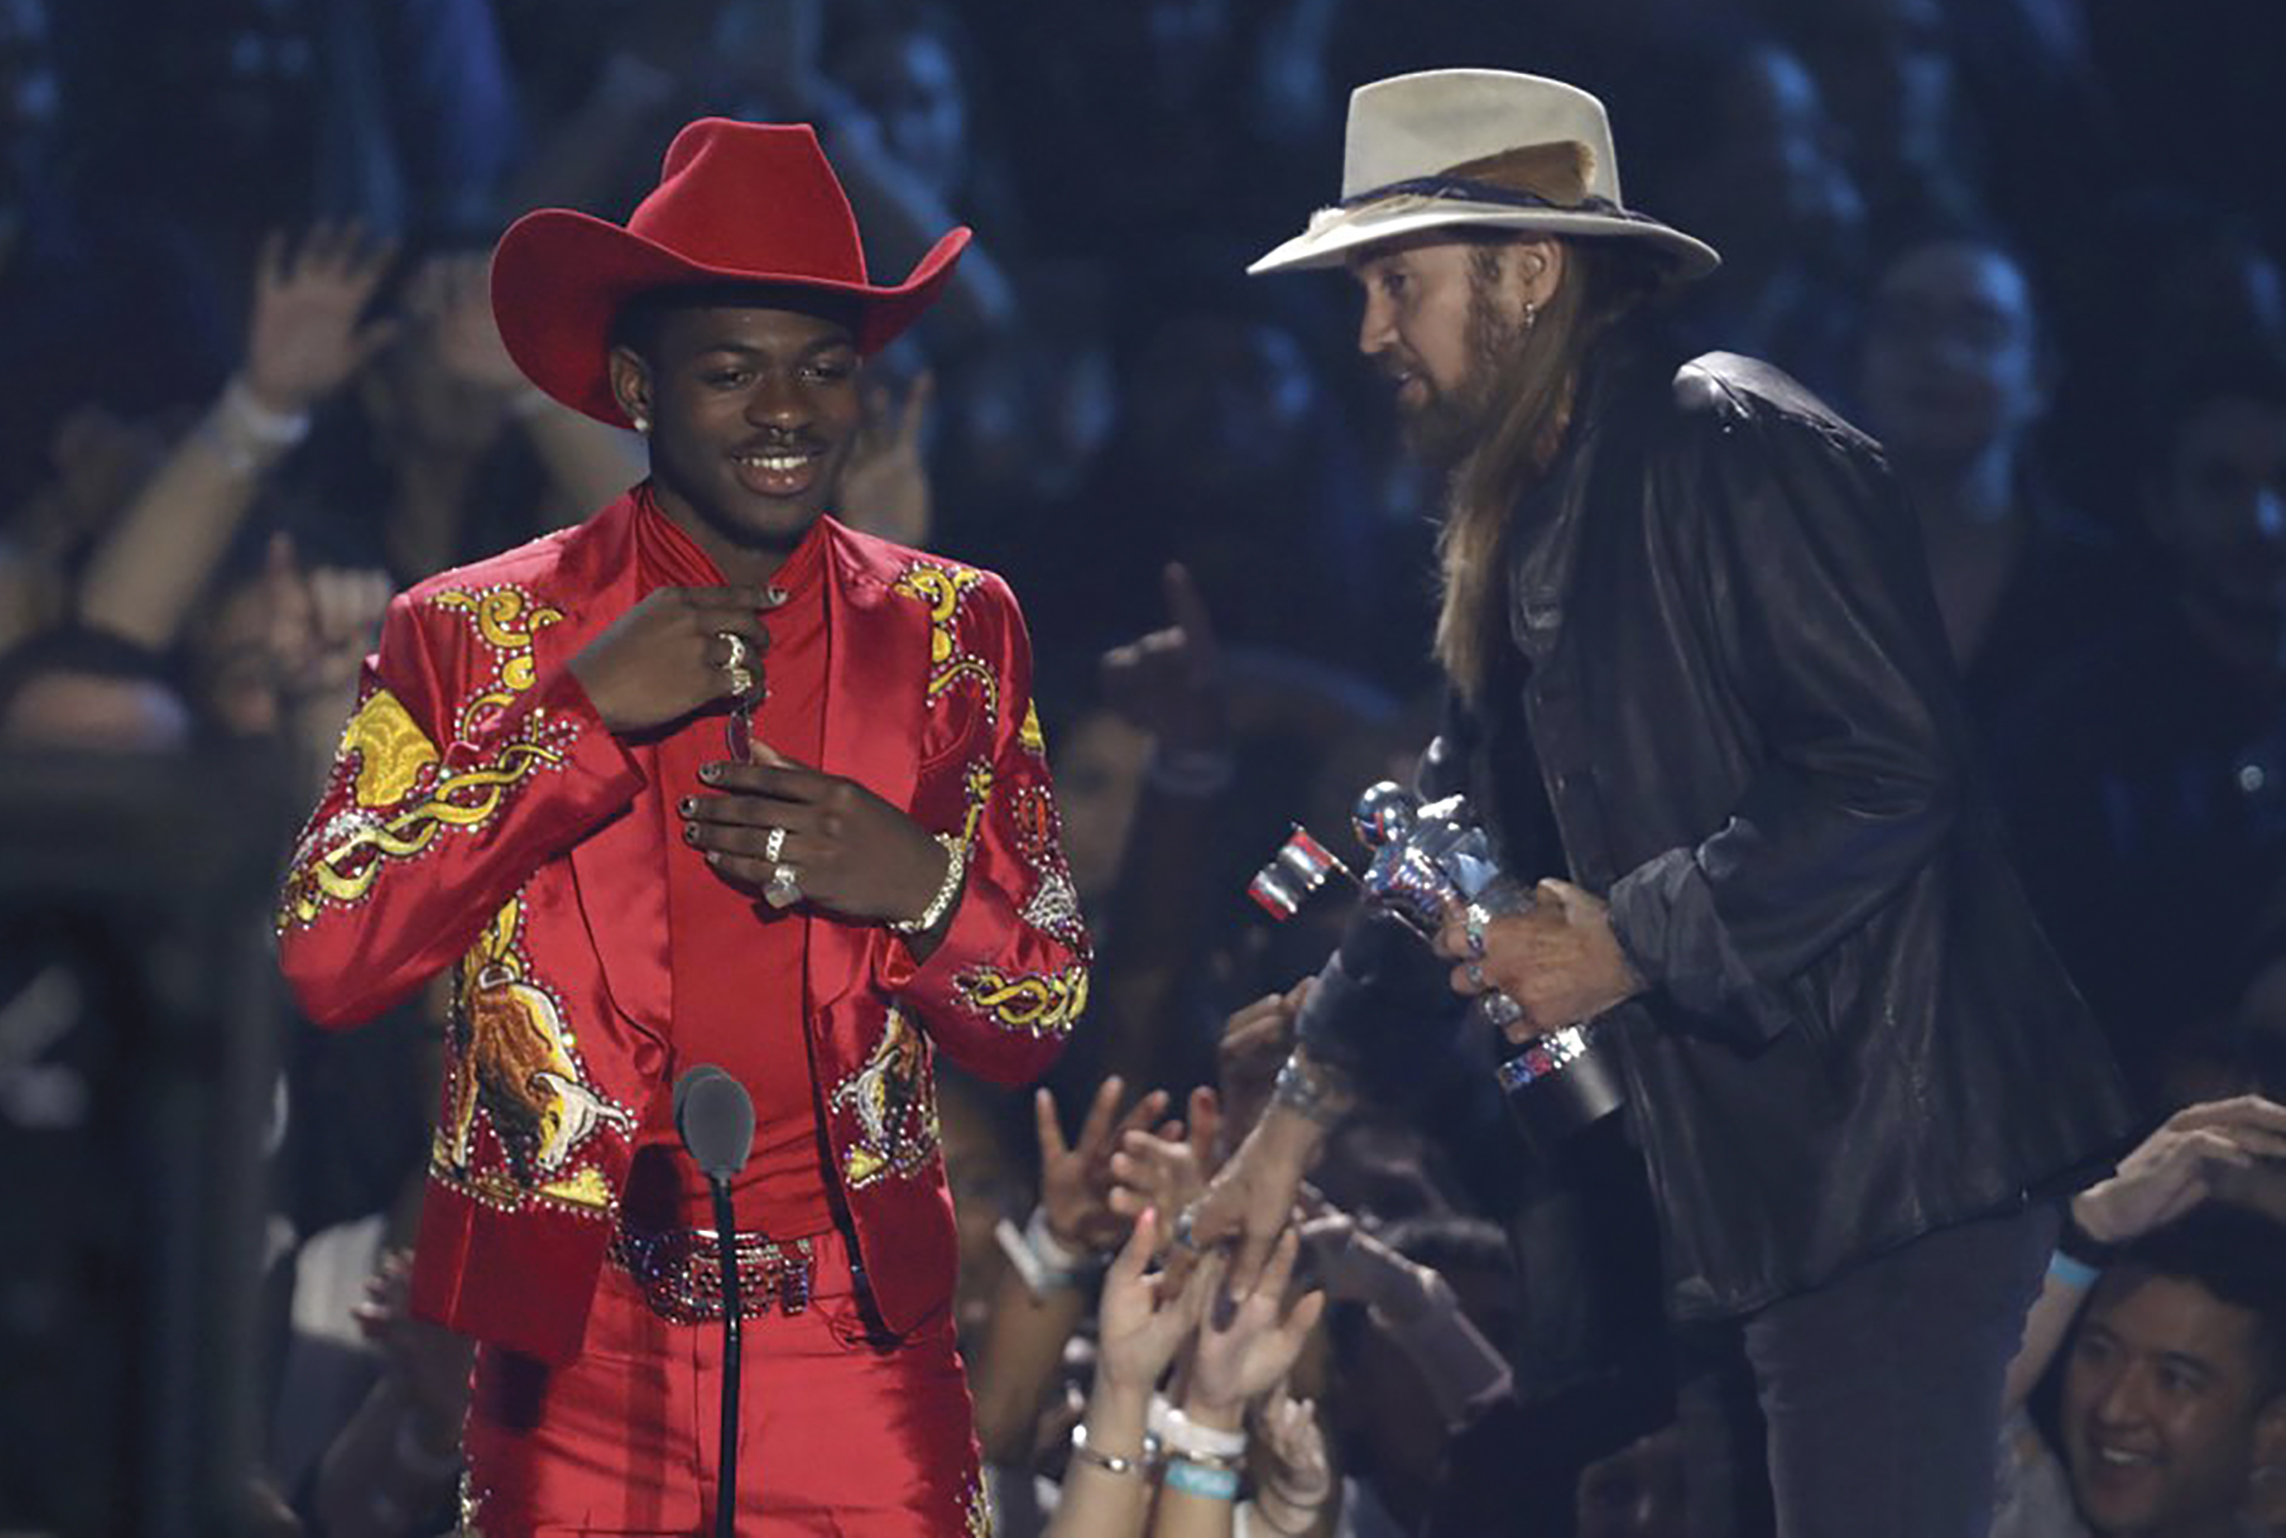 """Lil Nas X, left, and Billy Ray Cyrus accept the song of the year award for """"Old Town Road"""" at the MTV Video Music Awards at the Prudential Center on Monday, Aug. 26, 2019, in Newark, N.J. (Photo by Matt Sayles/Invision/AP)"""